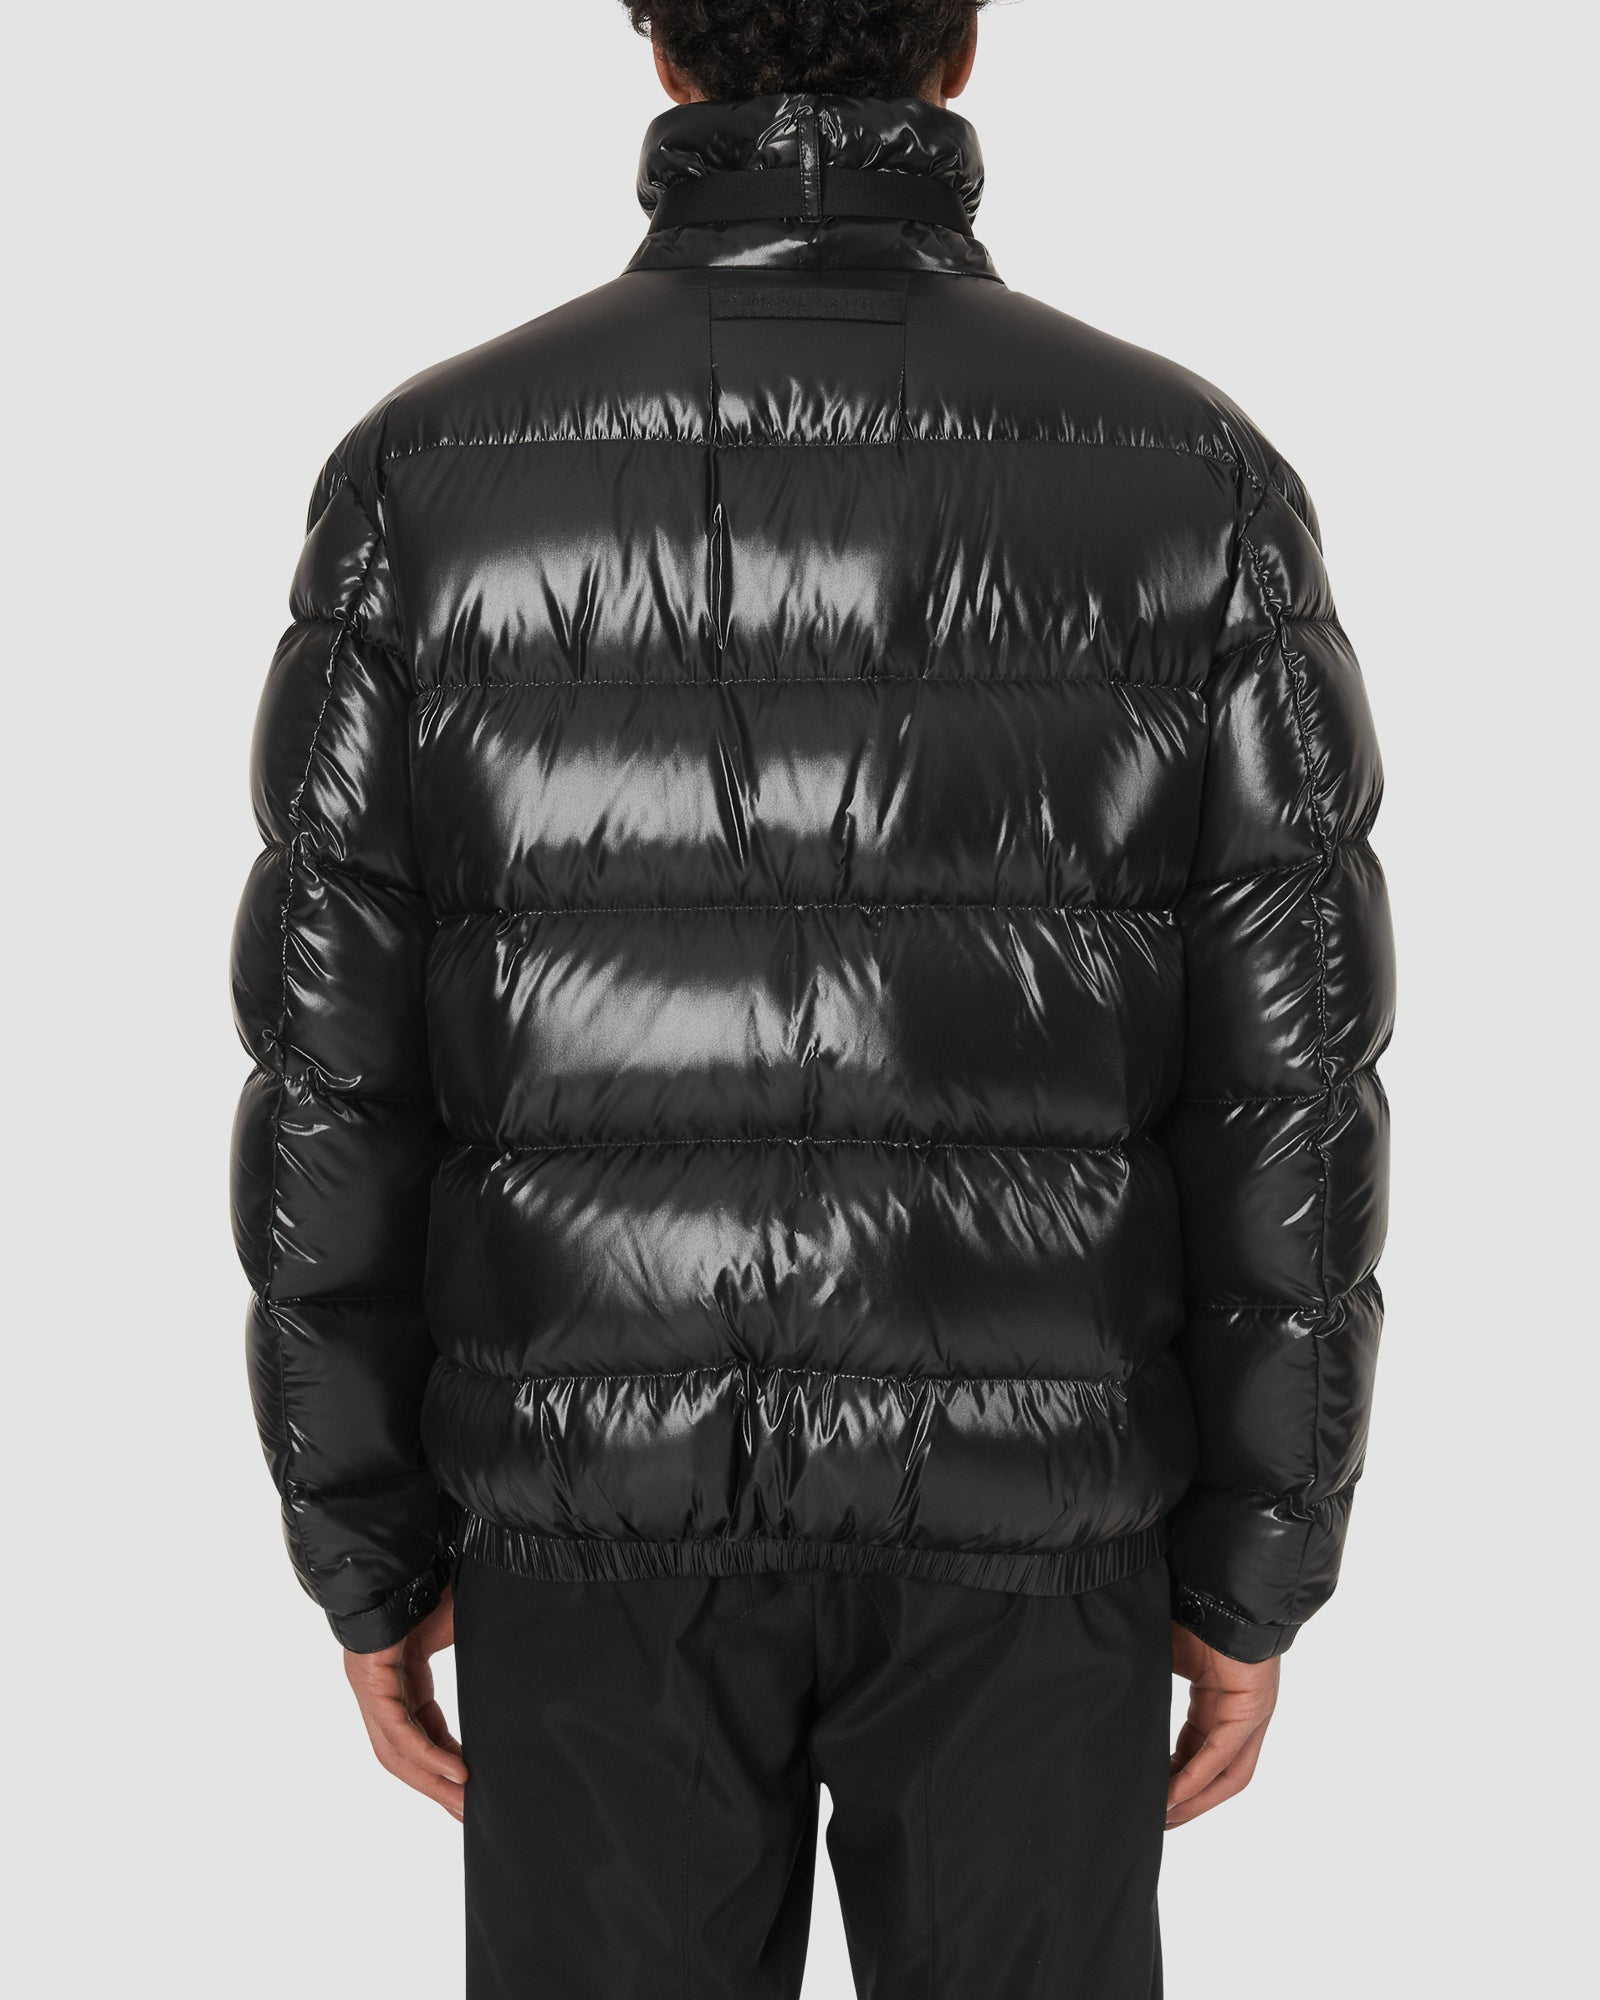 1017 ALYX 9SM | MONCLER SIRUS JACKET | Outerwear | BLACK, Google Shopping, Man, Moncler, OUTERWEAR, S20, UNISEX